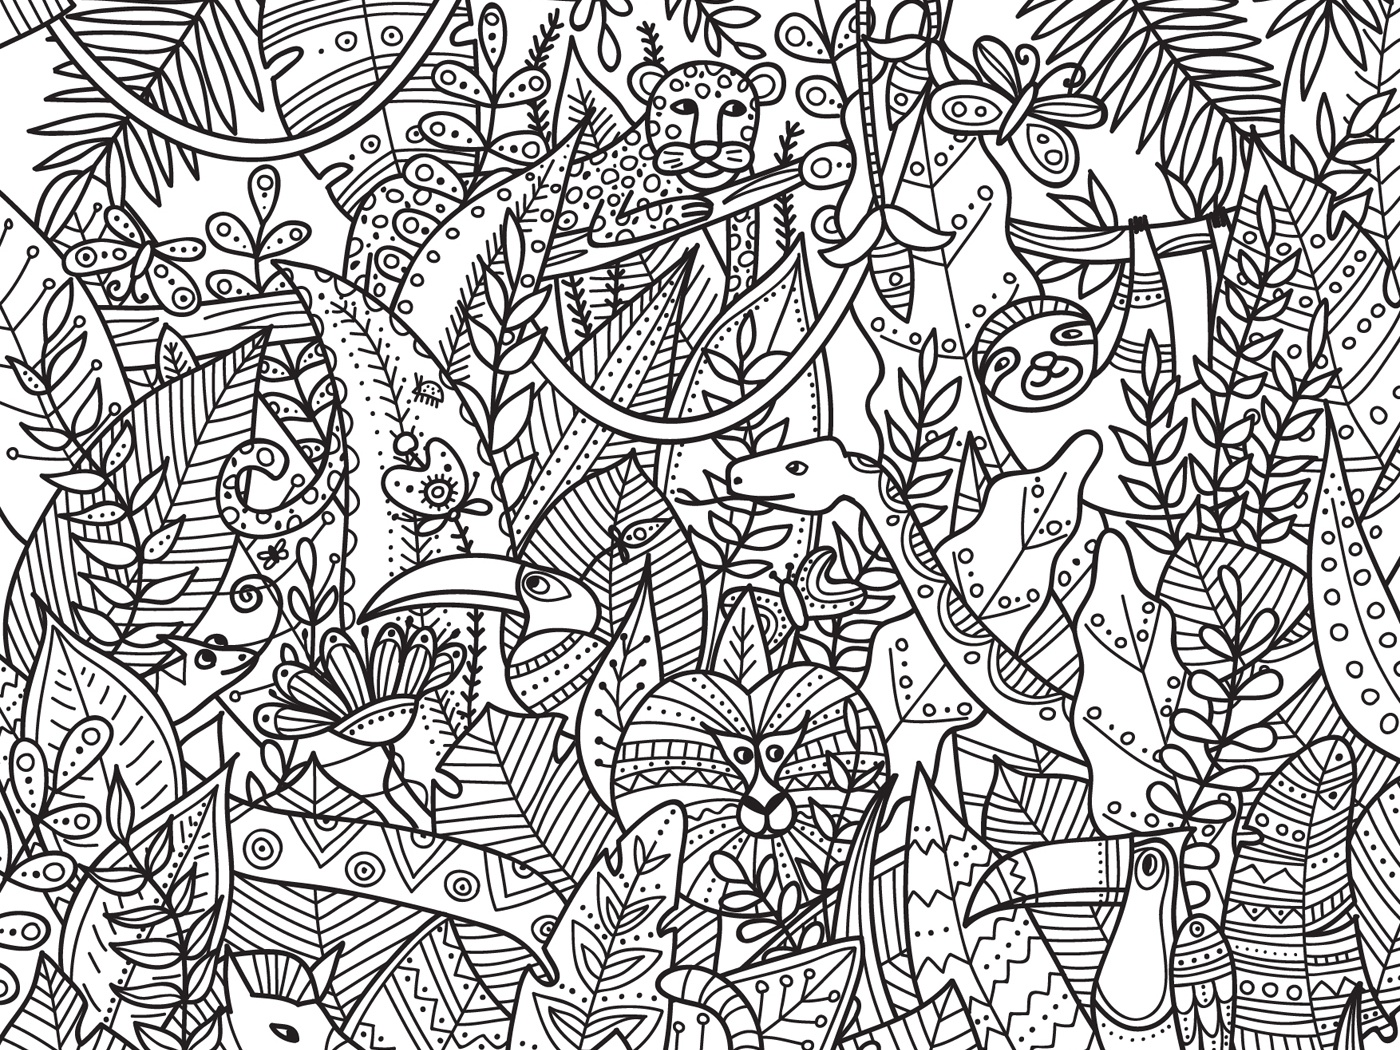 - Jungle Coloring Page By Yuliia Bahniuk On Dribbble